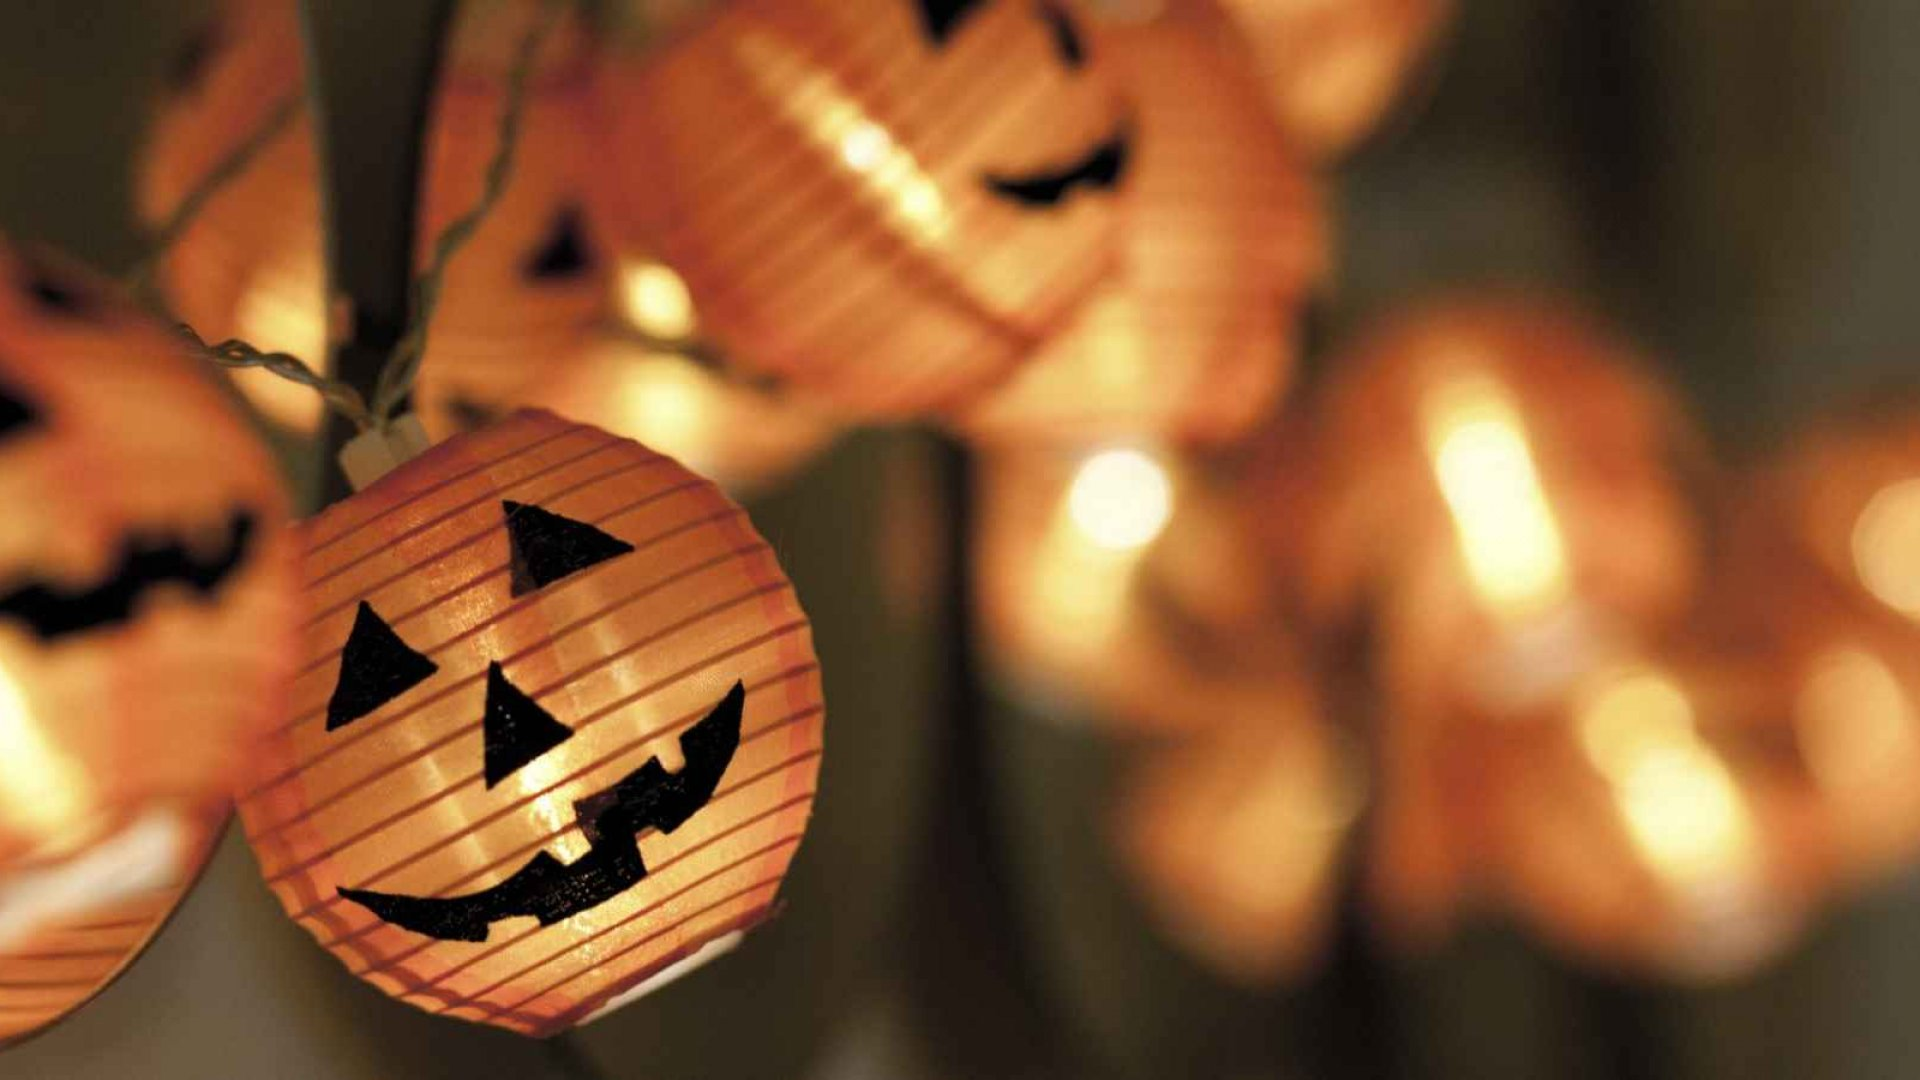 Americans Will Spend Nearly $7 Billion on Halloween This Year